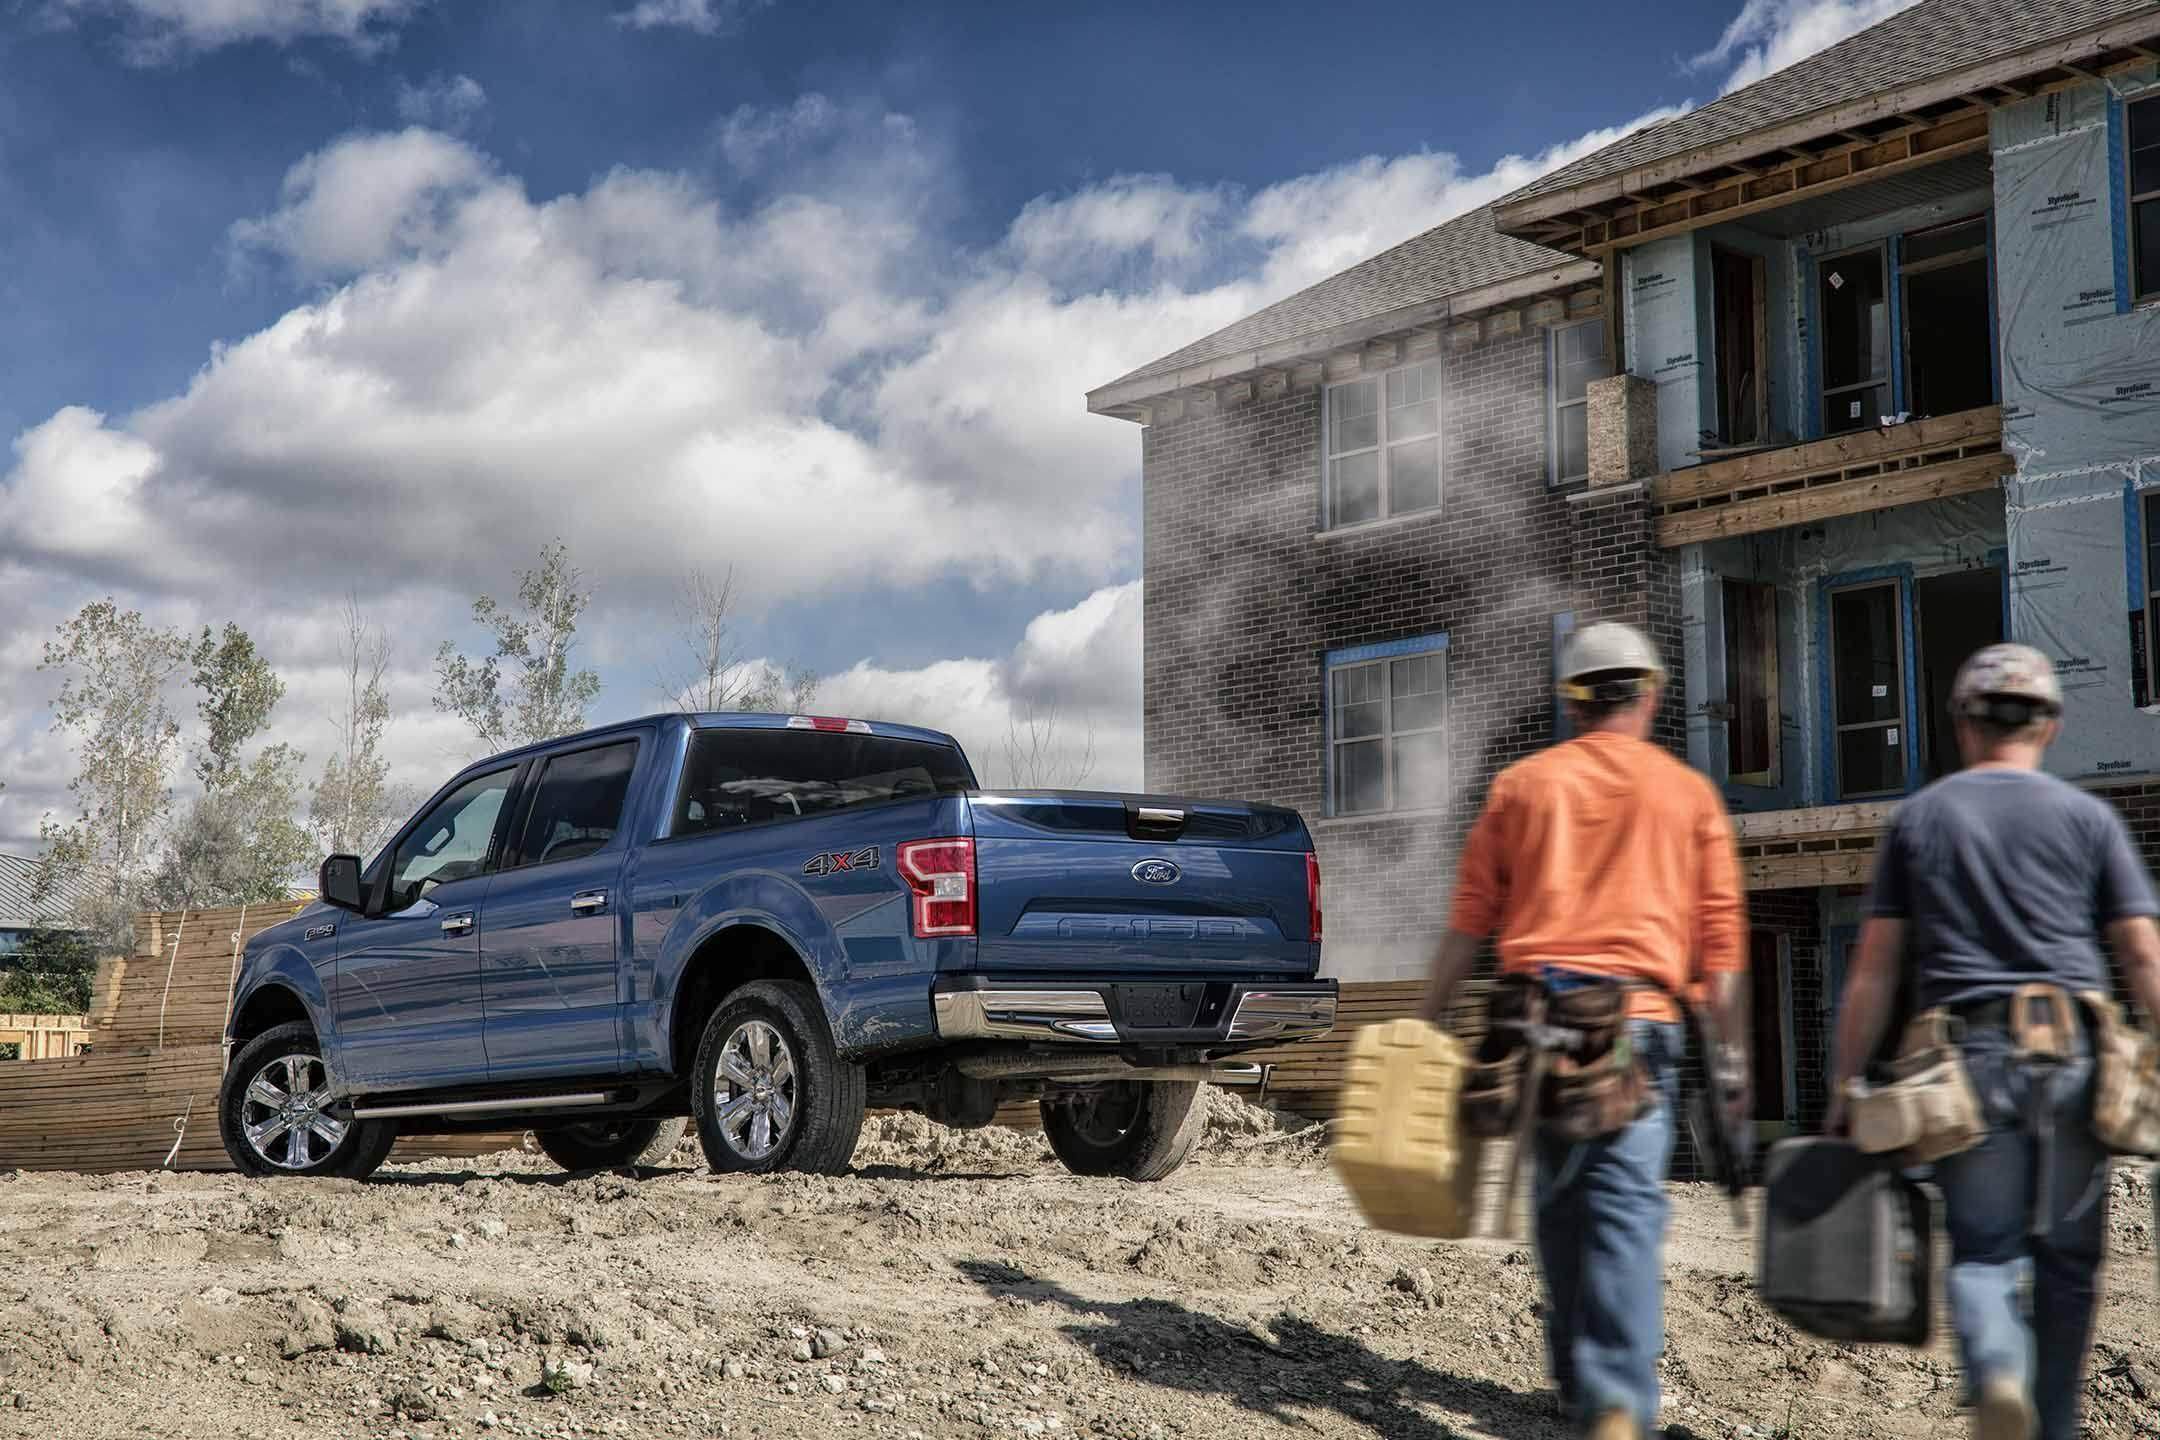 Ford F-150 Truck Photo Tour image